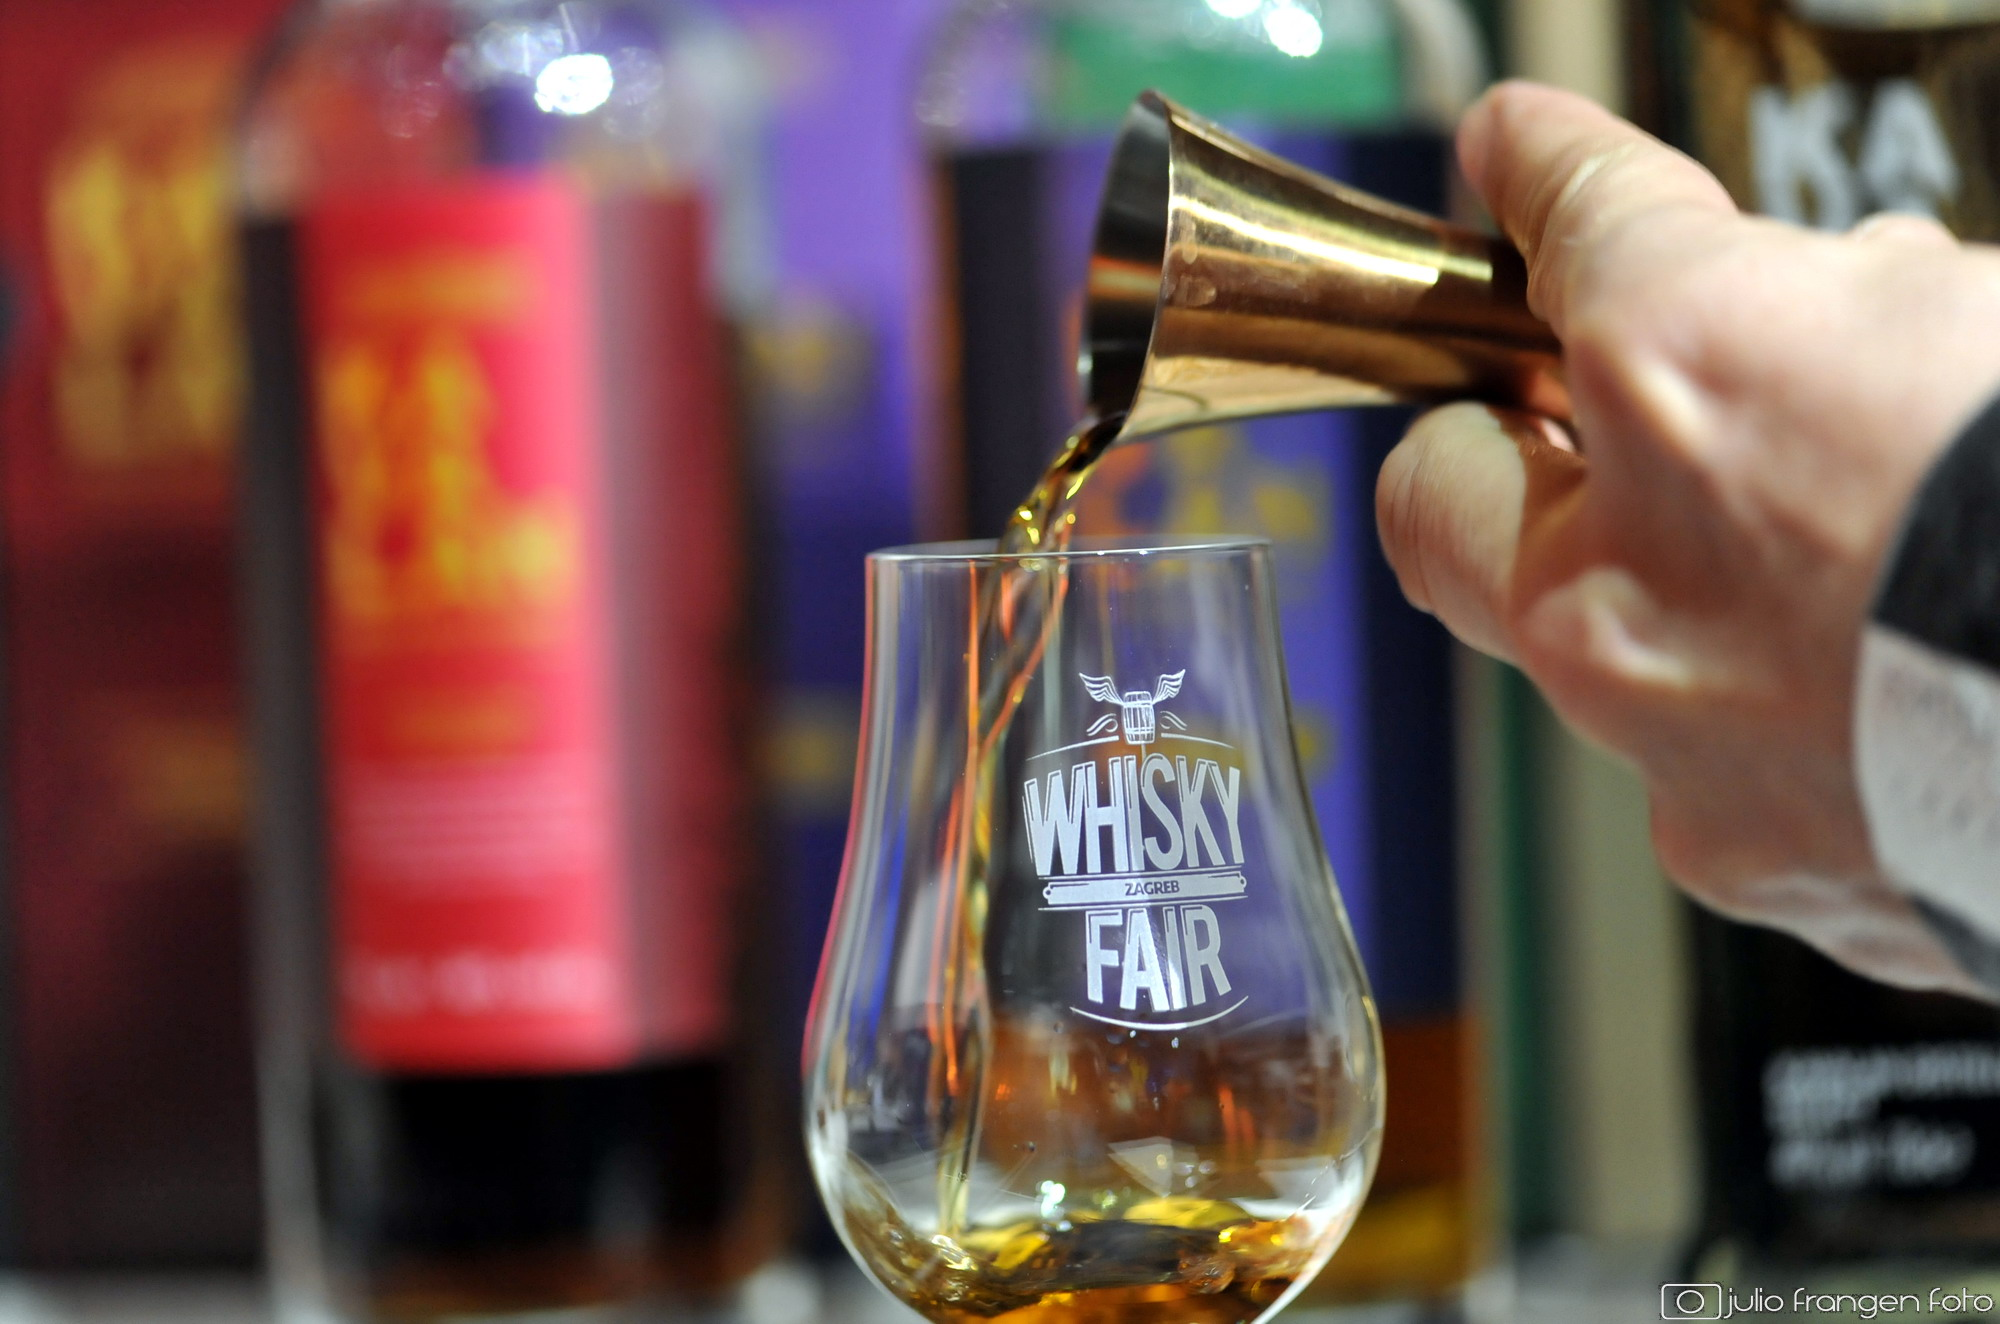 5. Zagreb Whisky Fair